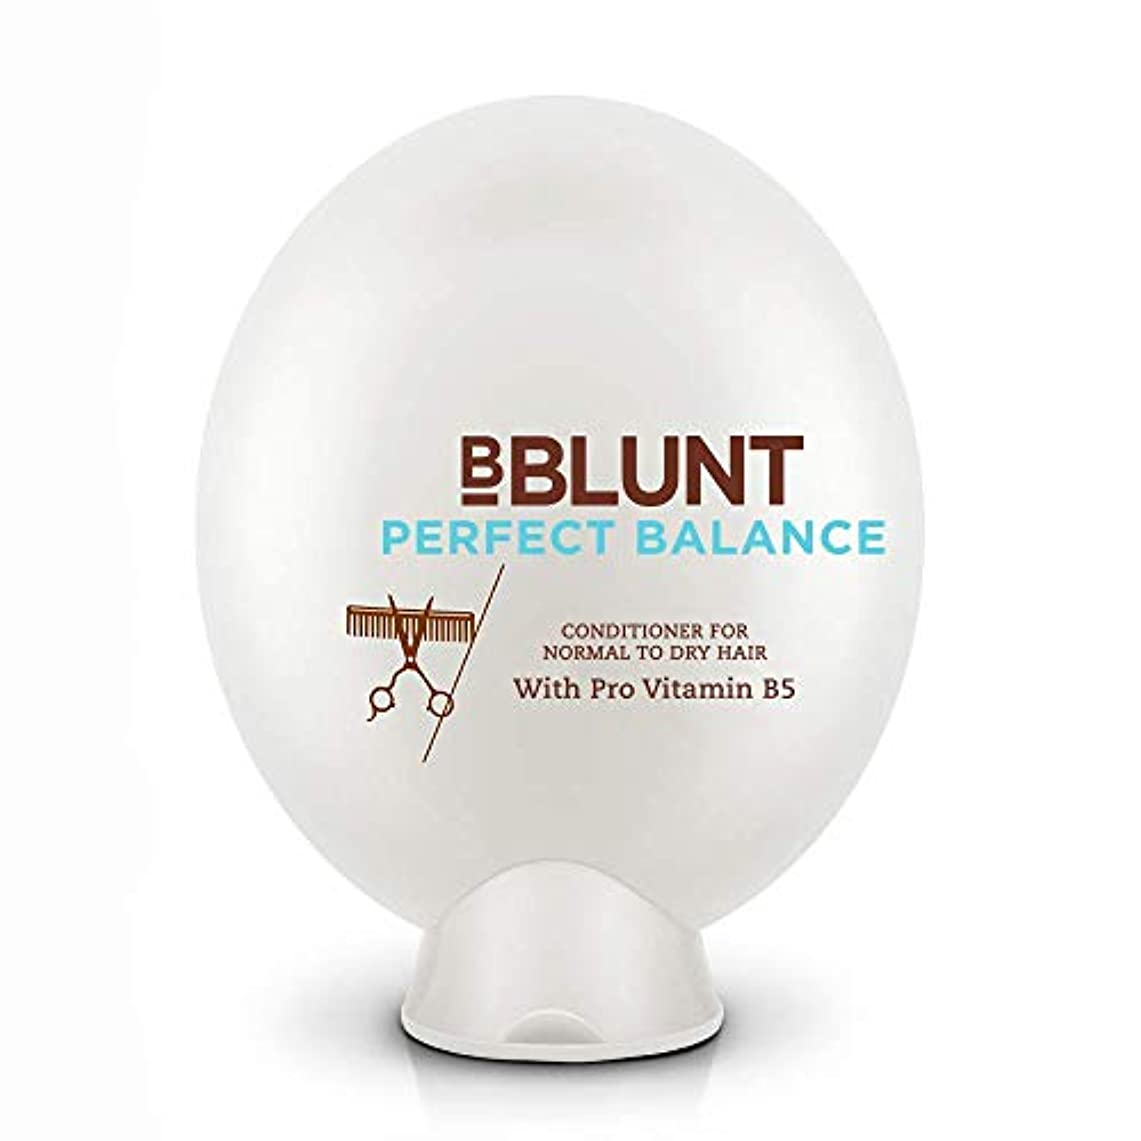 狂った彼統計的BBLUNT Perfect Balance Conditioner for Normal To Dry Hair, 200g (Provitamin B5)